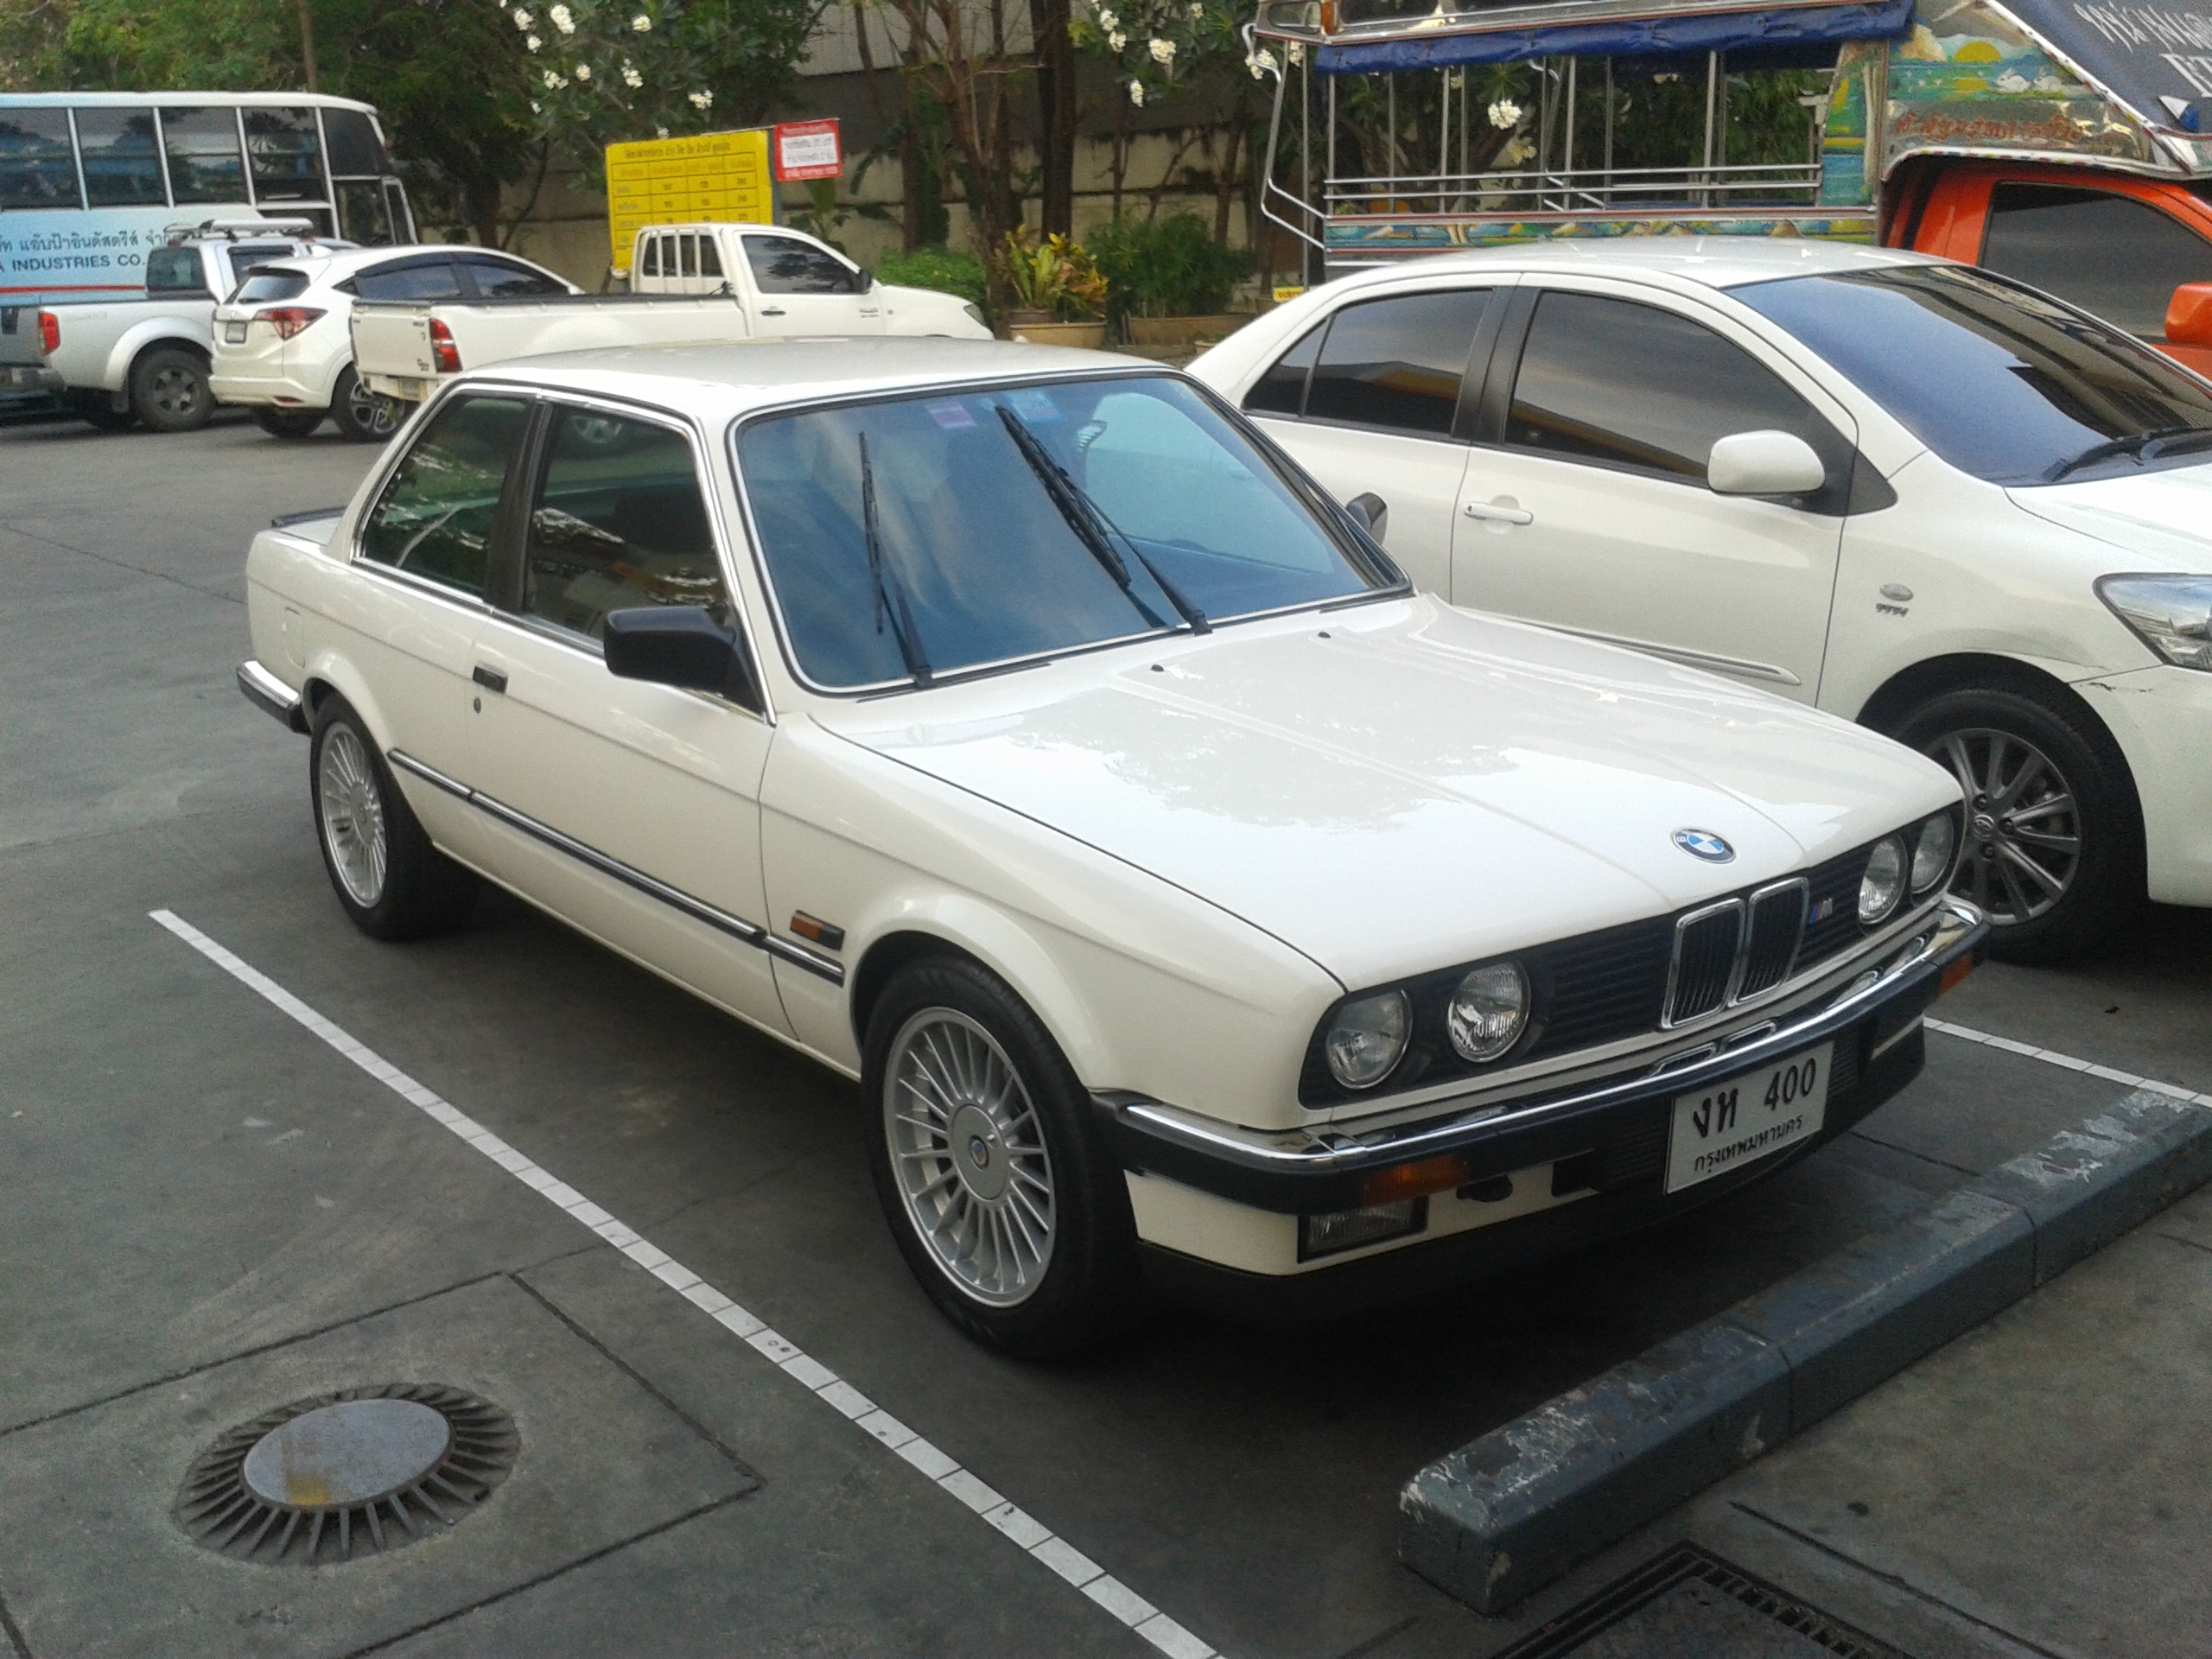 File Bmw 316 Alpina E30 Coupe In Thailand 02 Jpg Wikimedia Commons